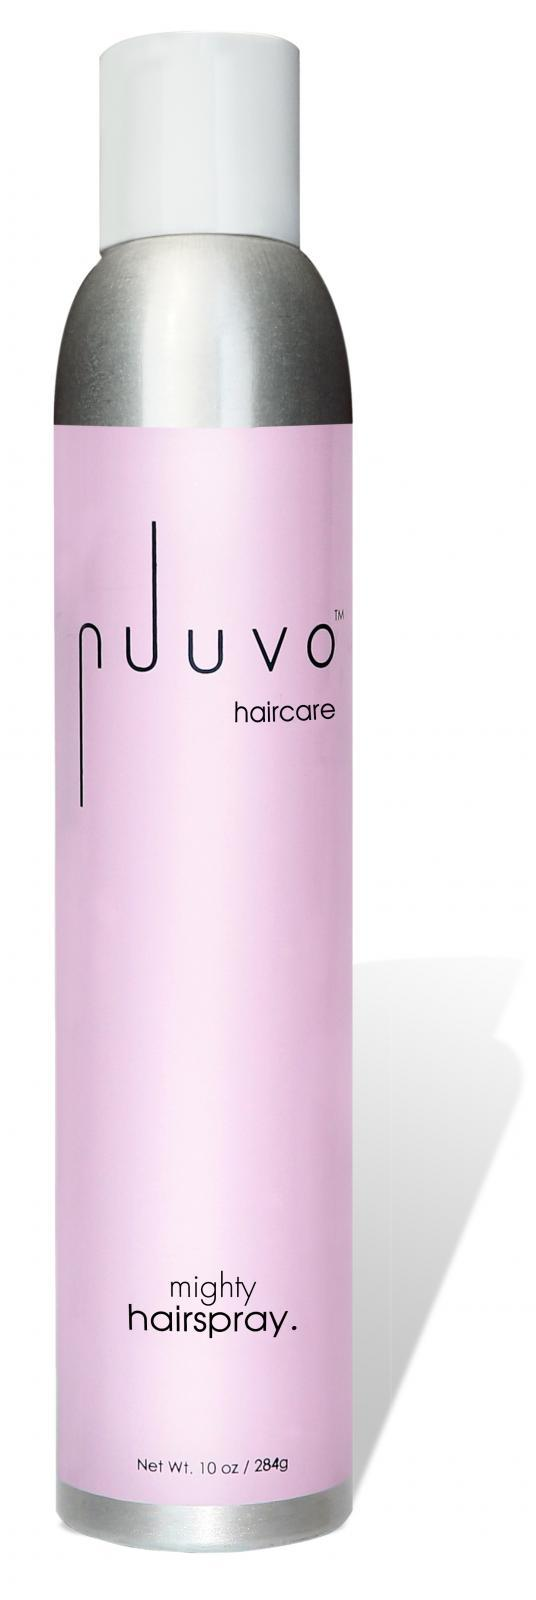 Nuuvo Haircare Mighty Hairspray - Paraben + Sulfate Free